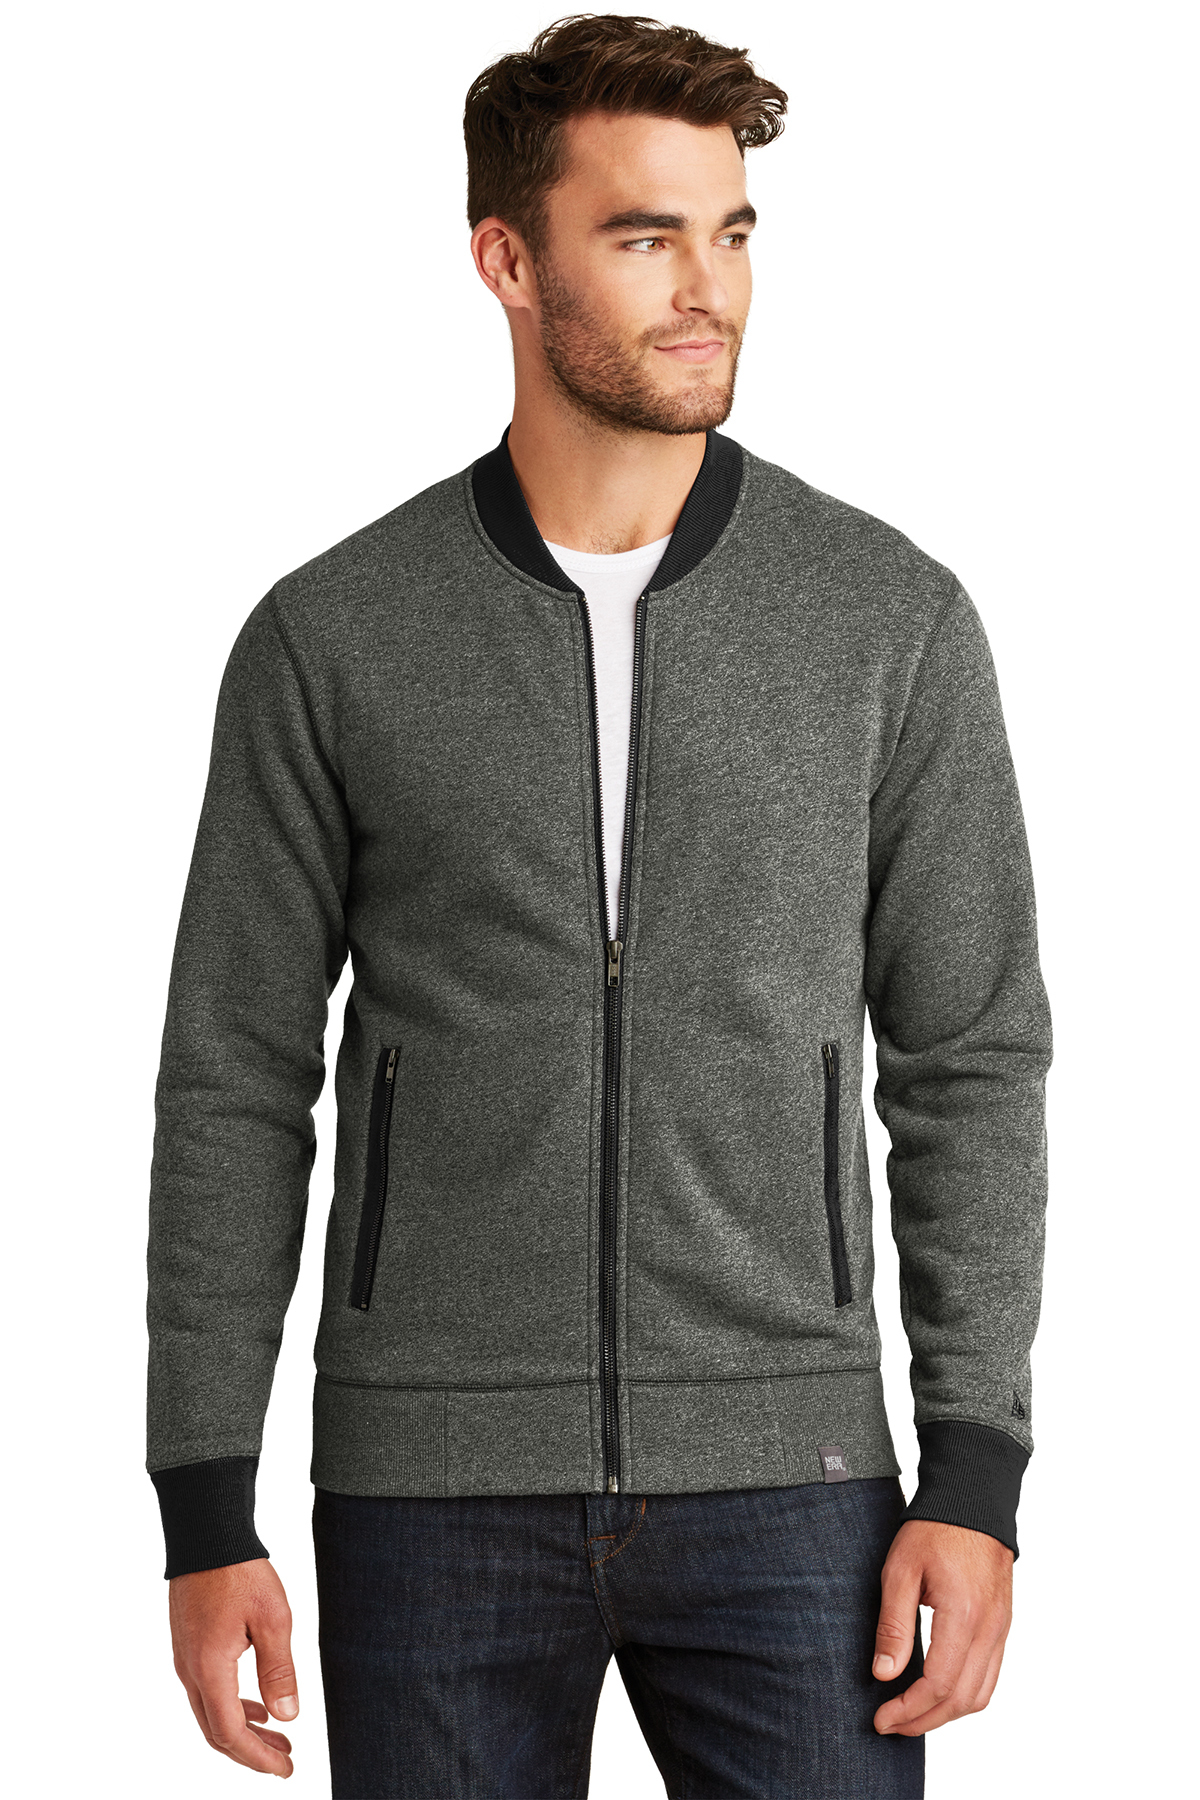 New Era NEA503 - Men's French Terry Baseball Full Zip ...